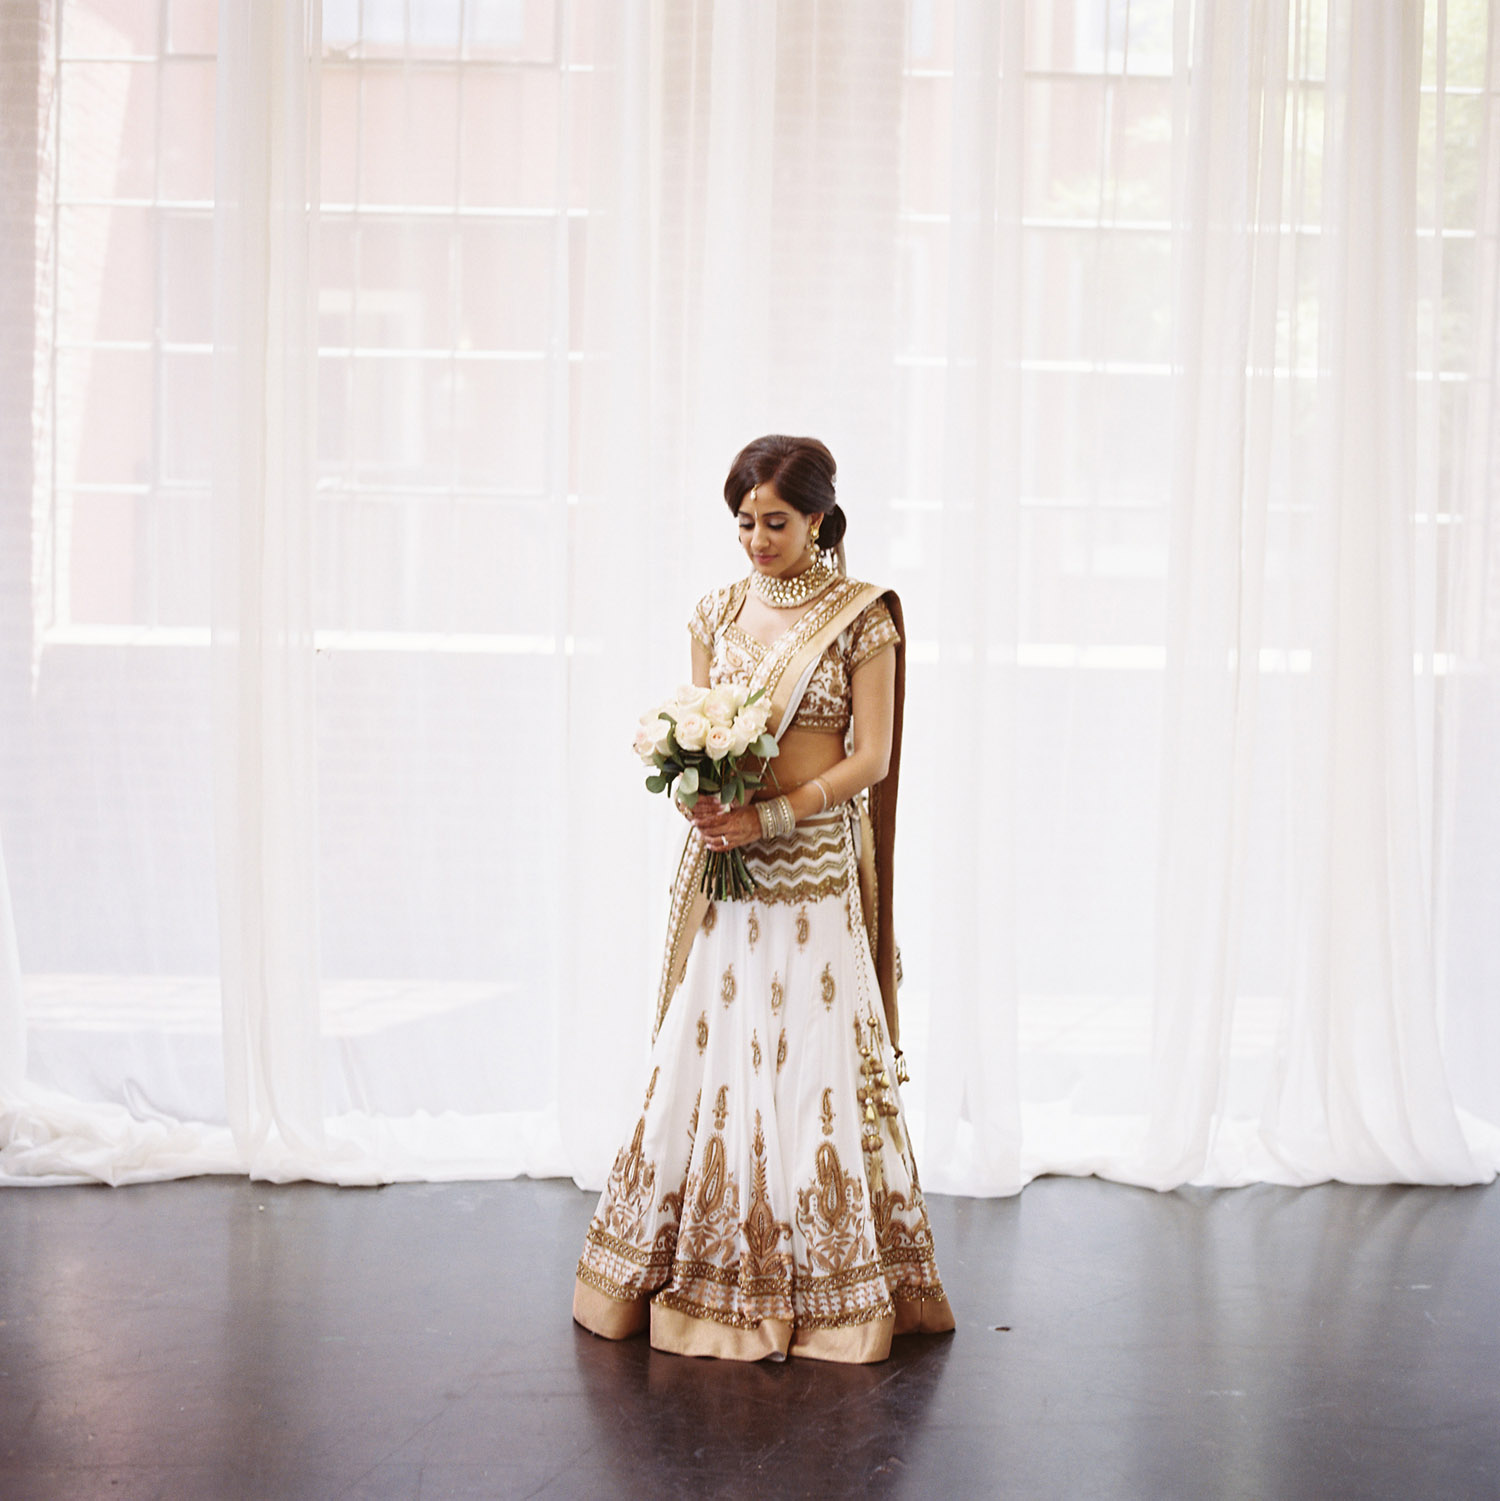 Sejal-Narayan-Wedding-Film-354.jpg